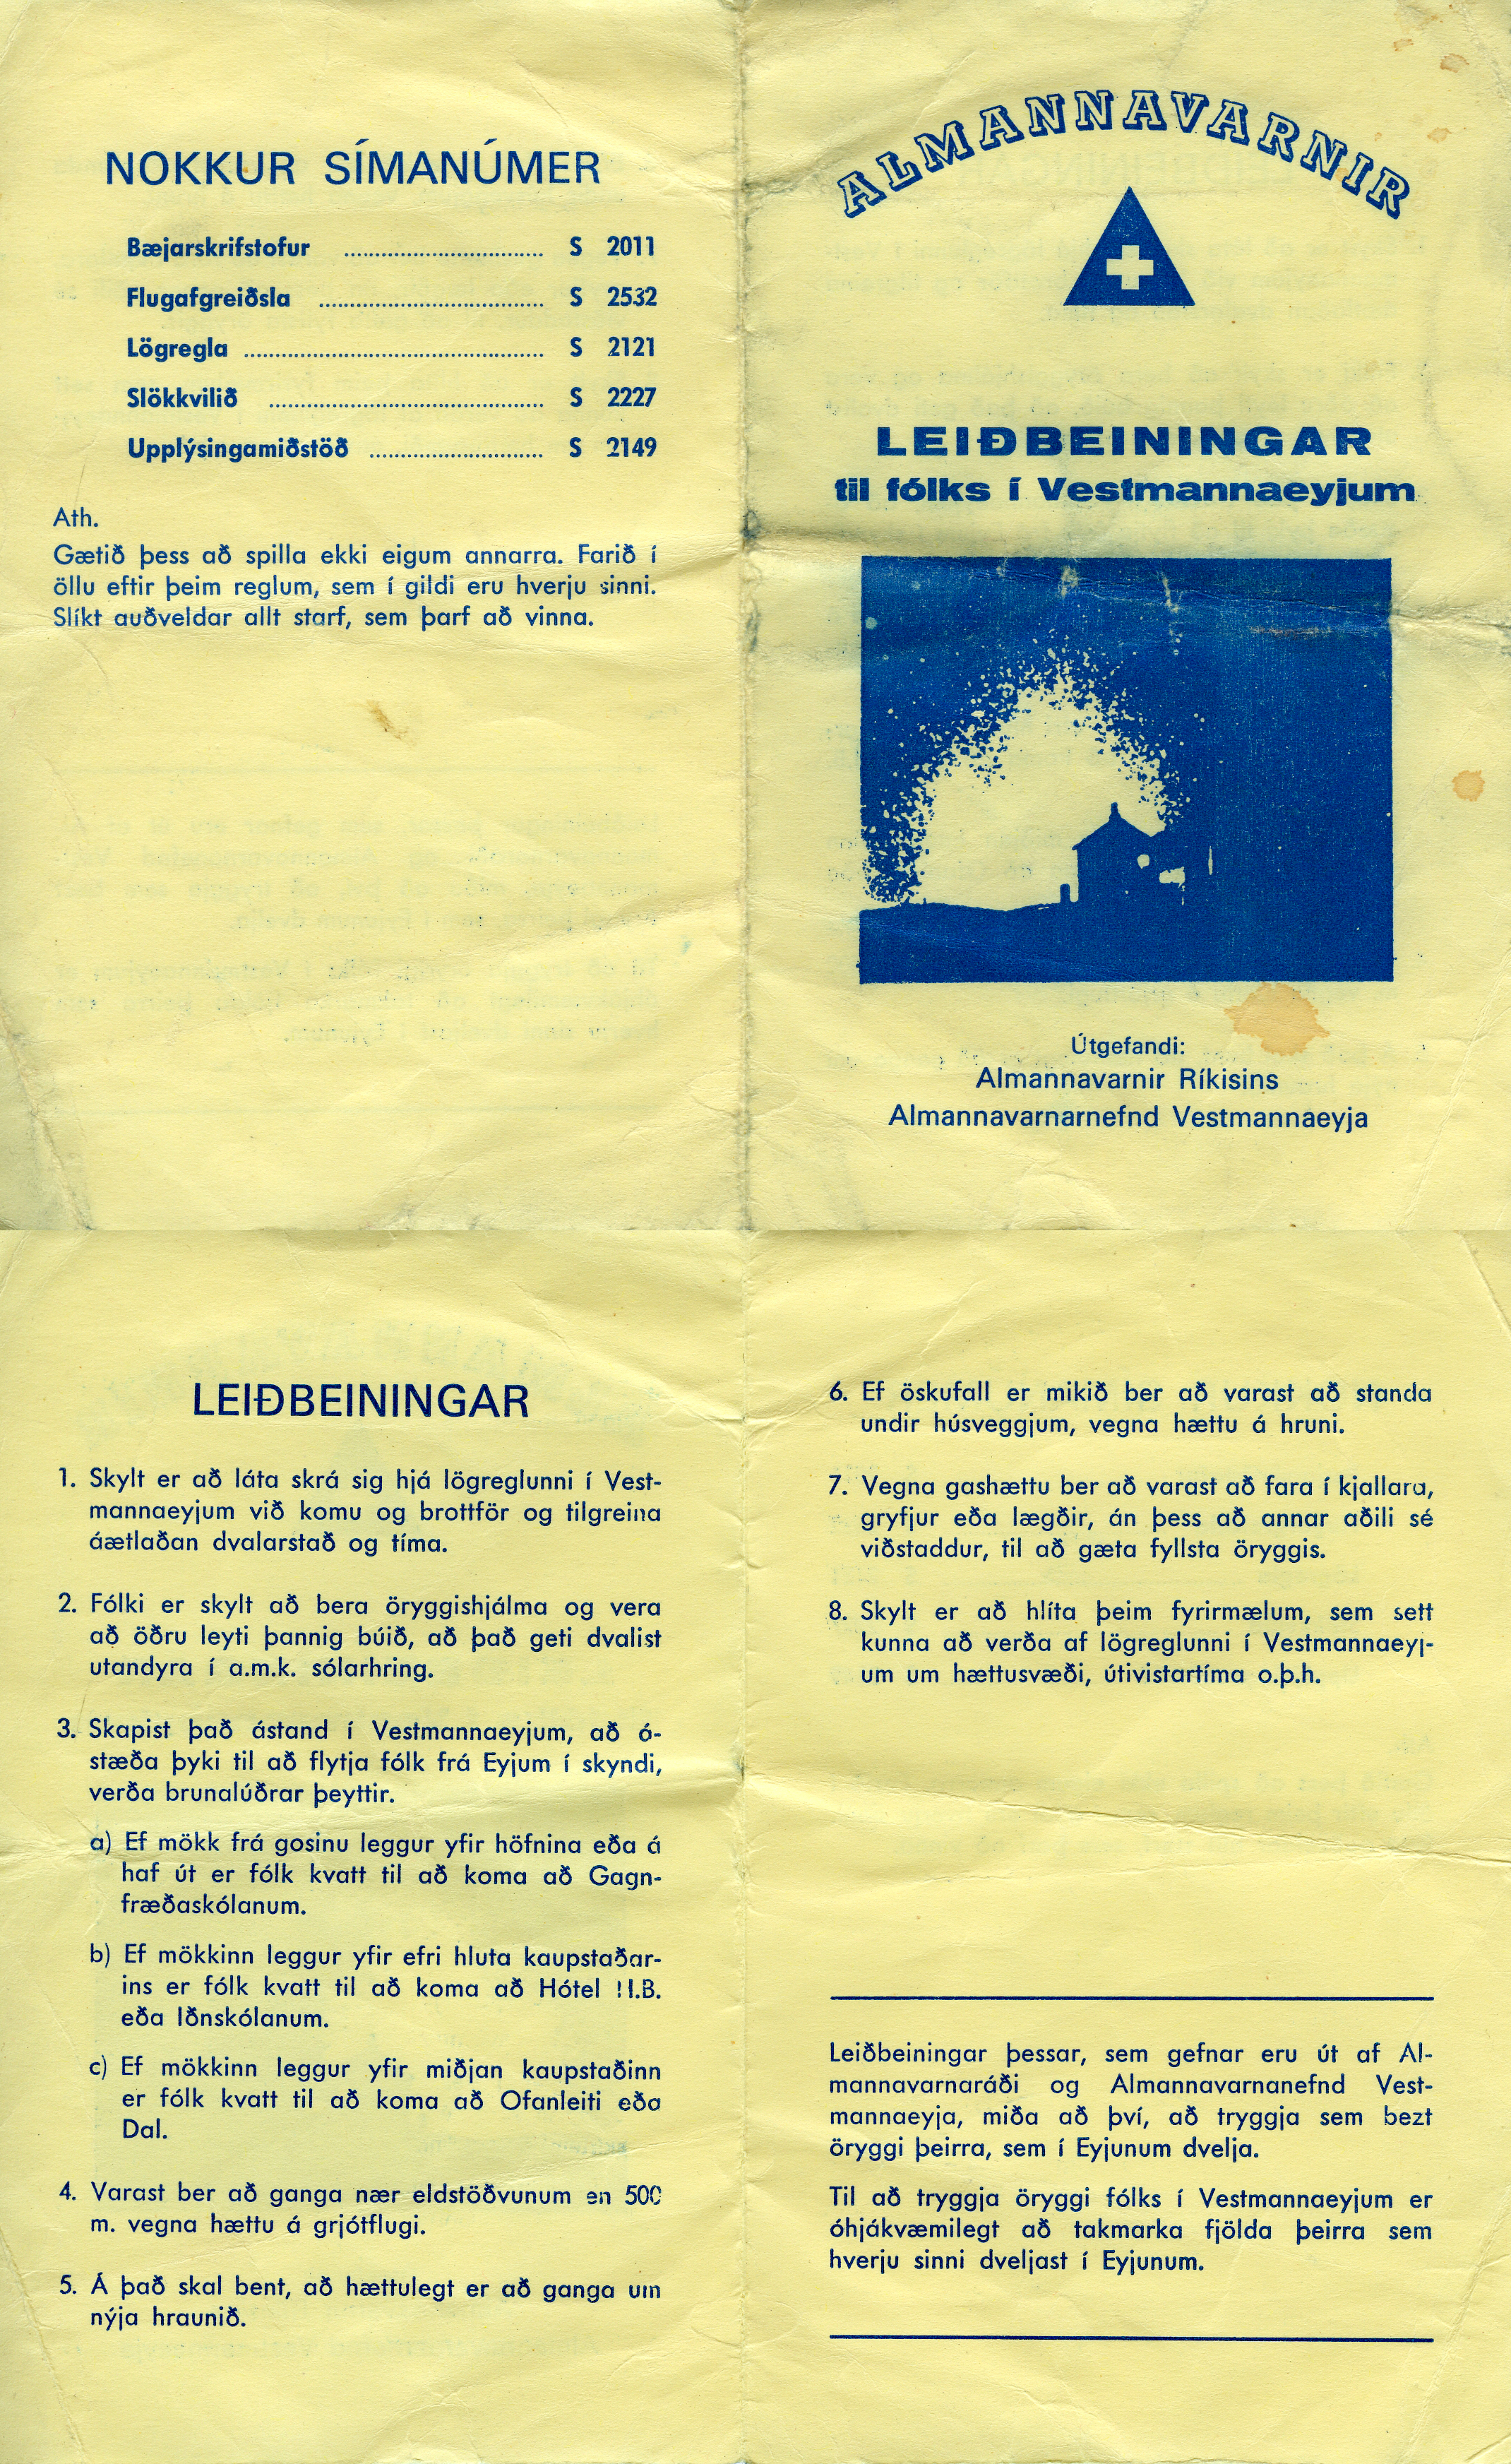 Instruction in Icelandic to the people in Vestmannaeyjar from the civil defense.